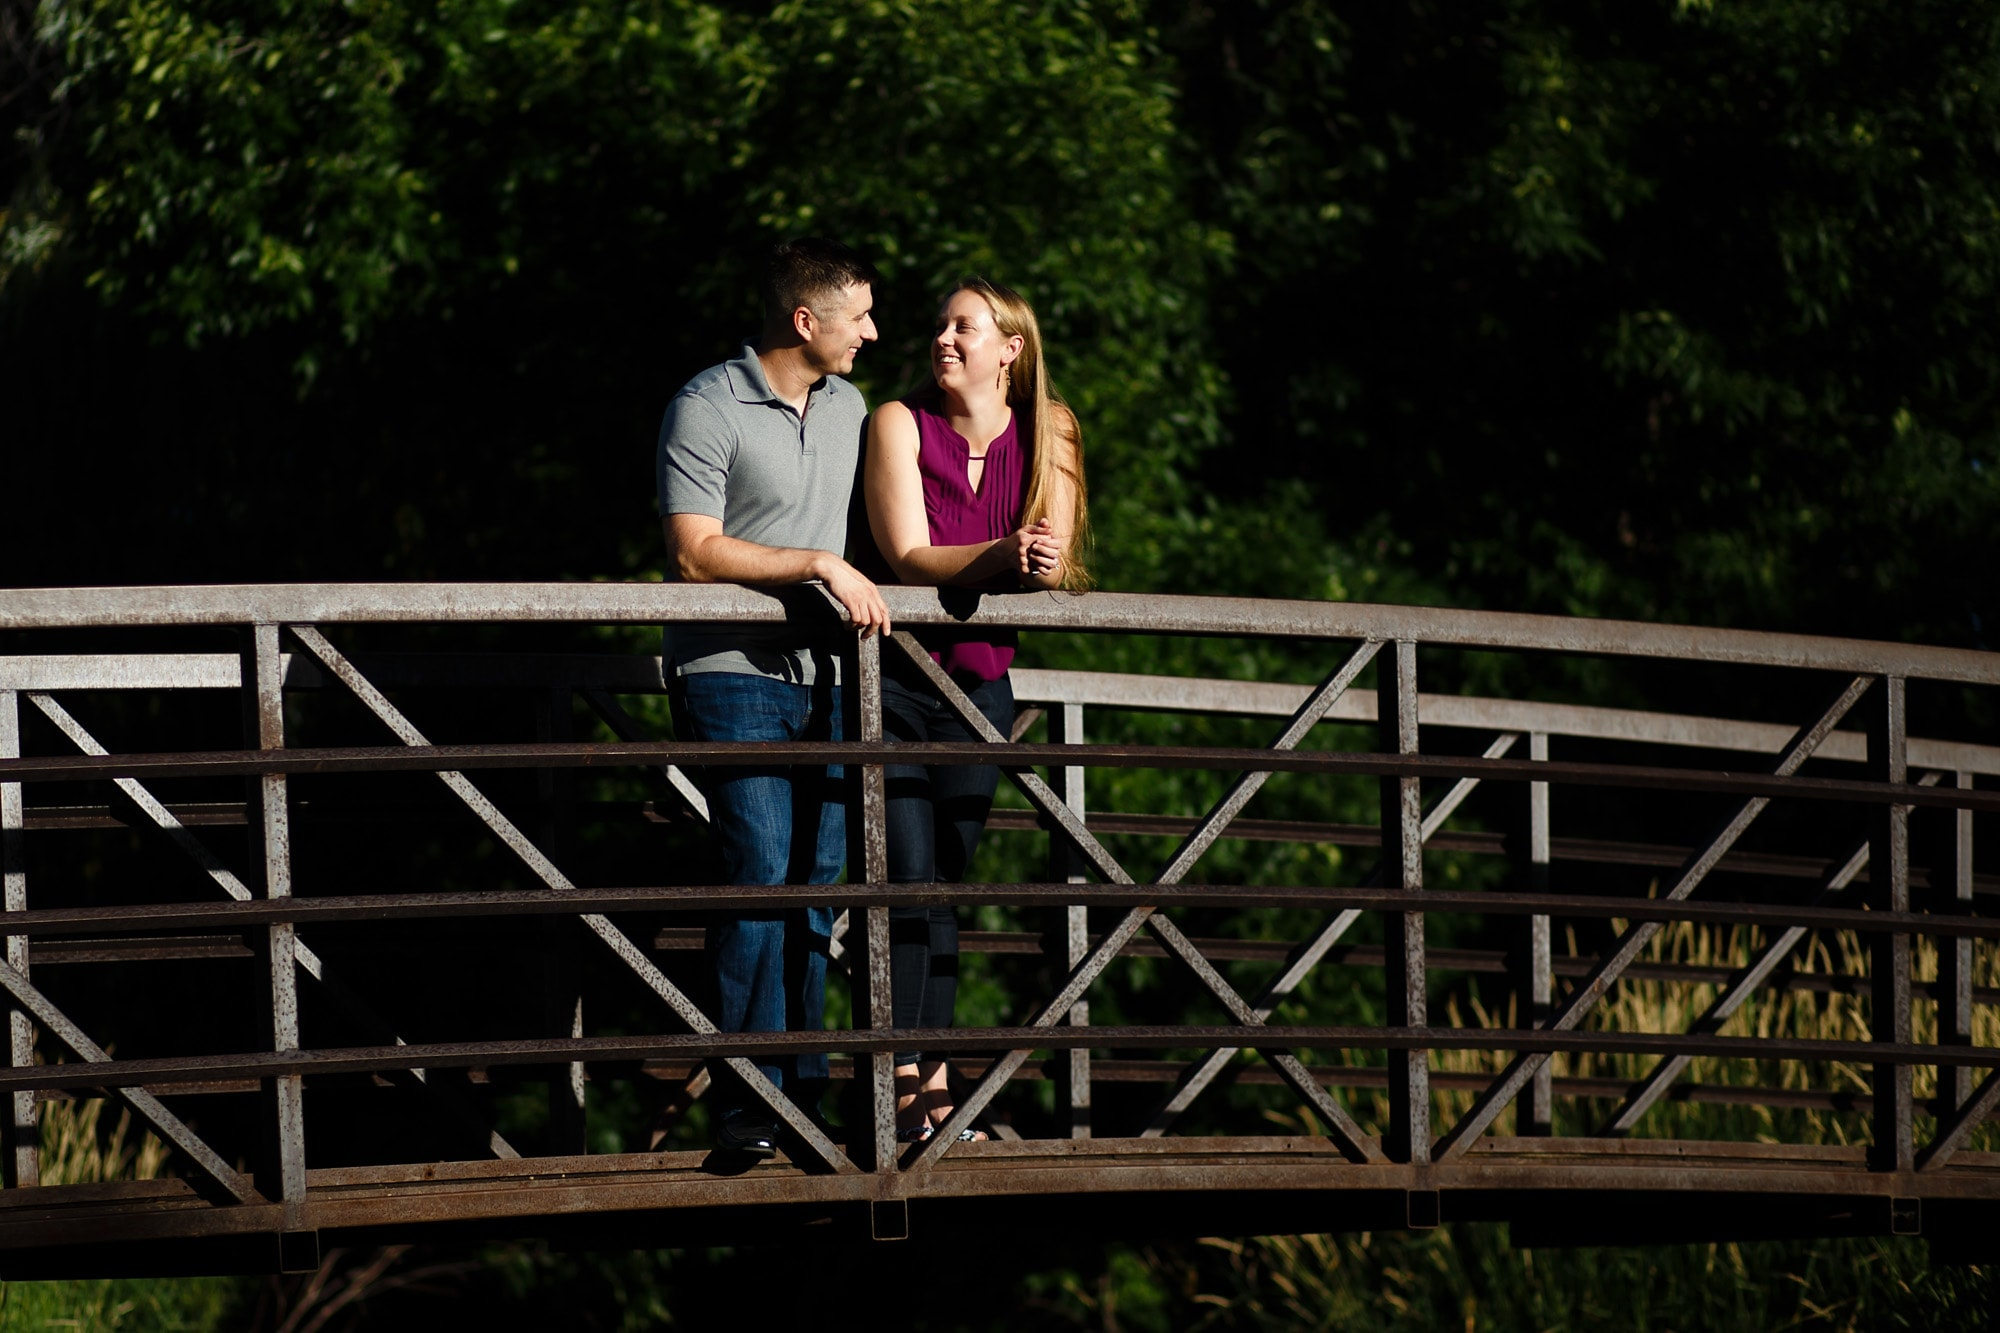 Megan and Bill share a moment at Sterne Park during their engagement session in Littleton Colorado.